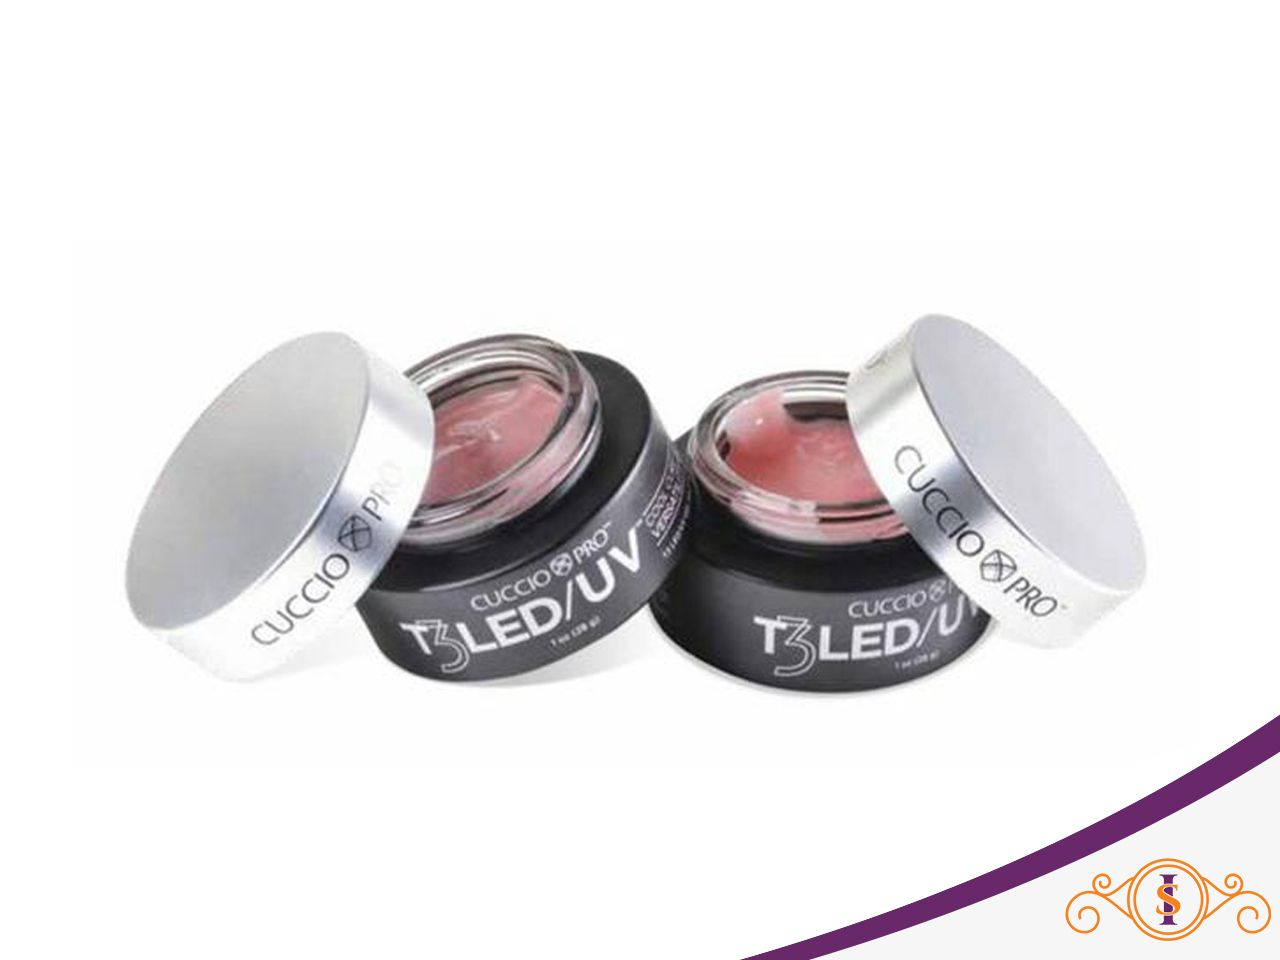 Gel - T3 Controlled Led/Uv - Pink - 56g